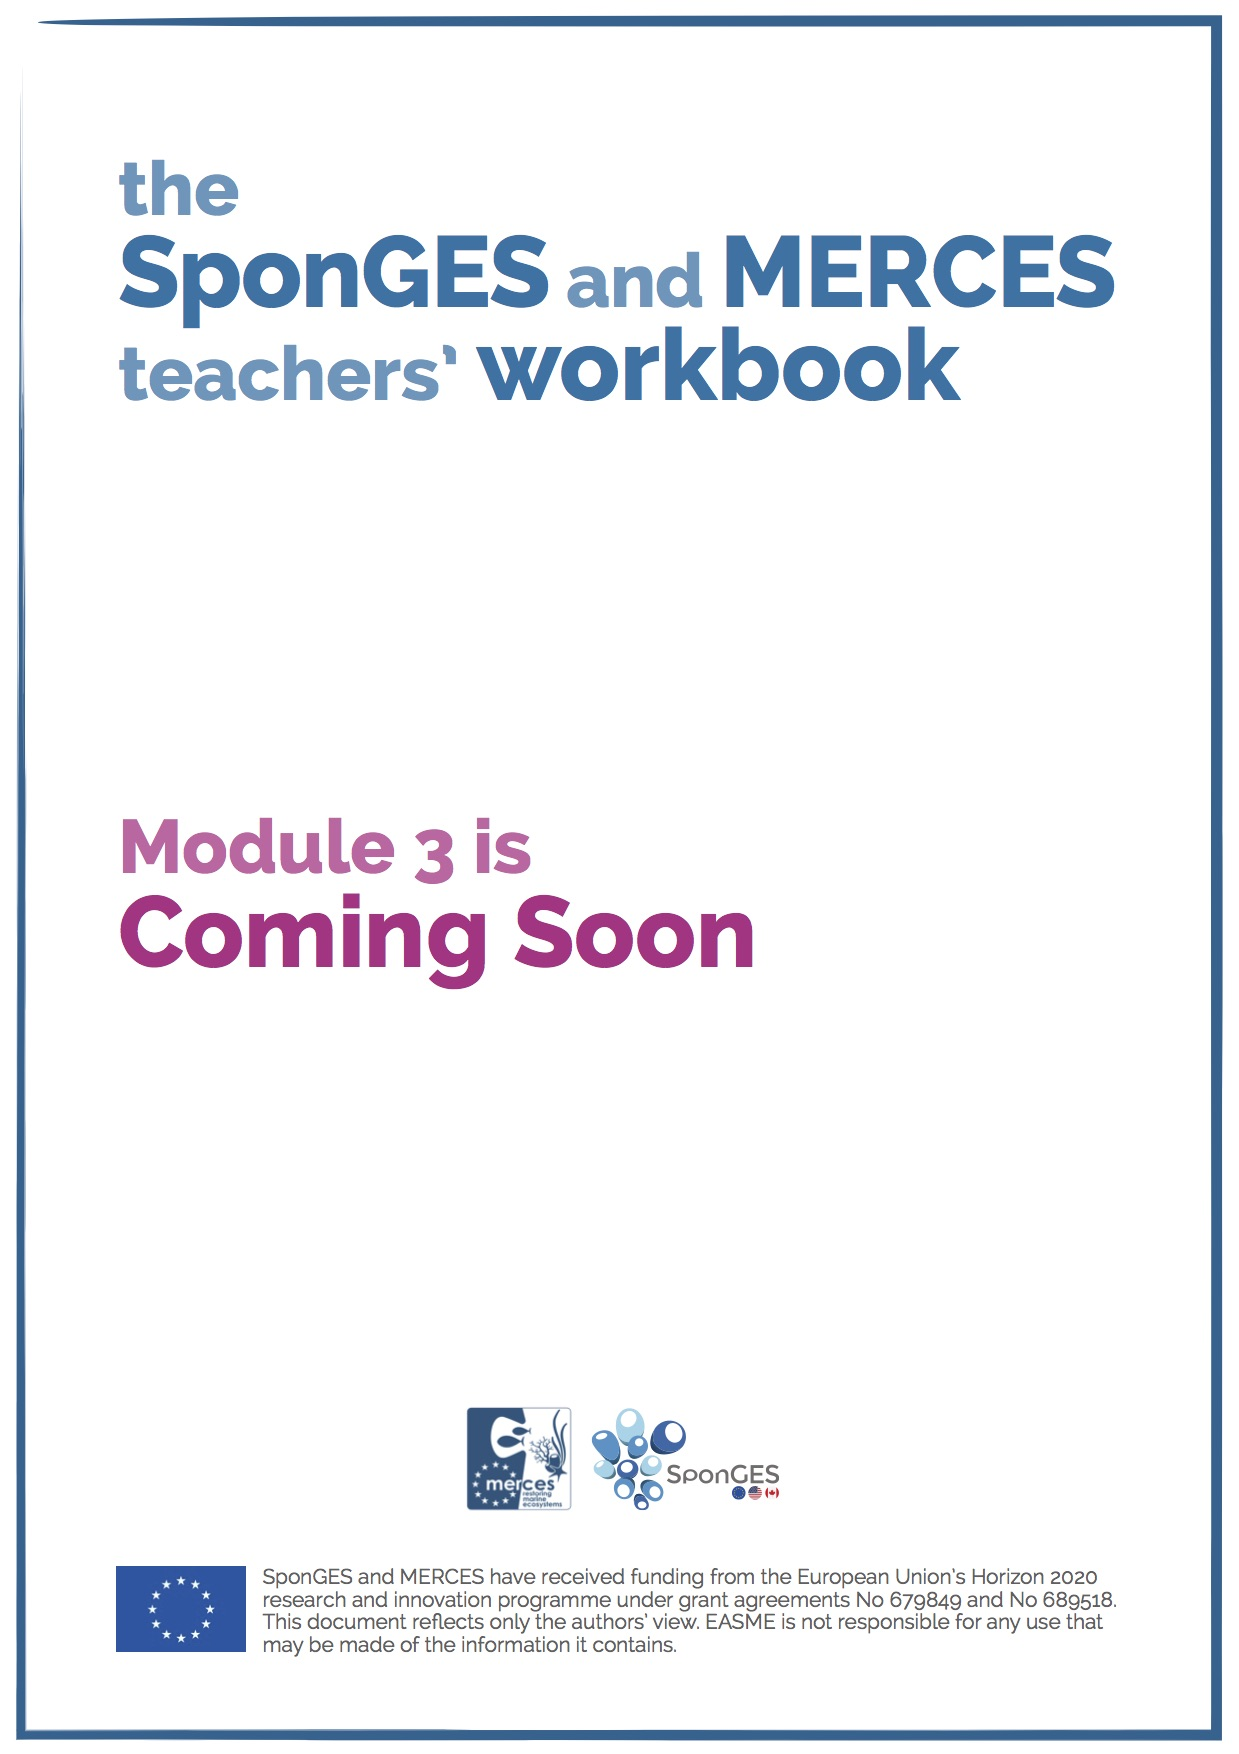 Module 3 of the SponGES and MERCES teachers' workbook